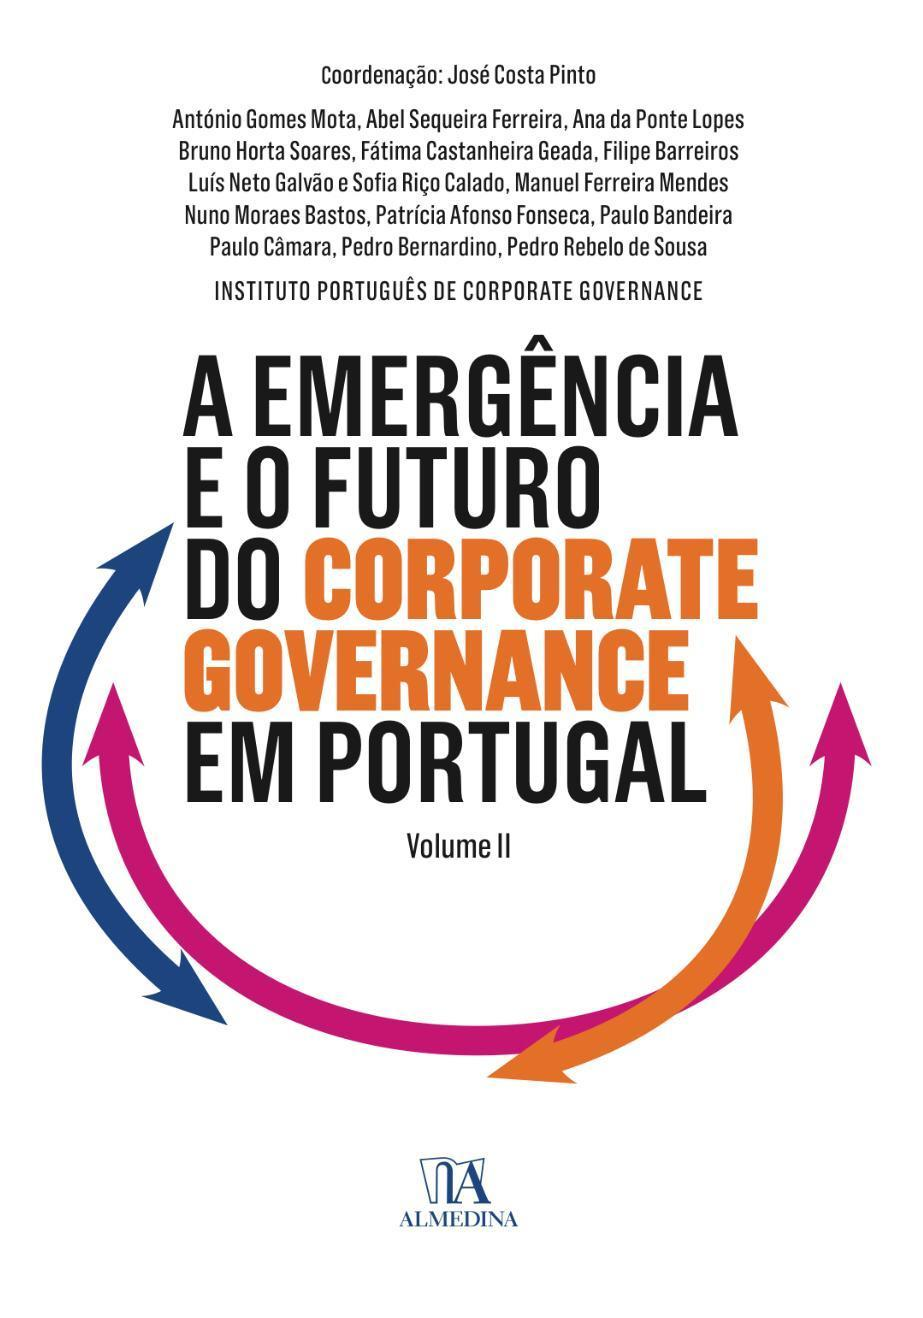 A Emergência e o Futuro do Corporate Governance em Portugal-Vol II